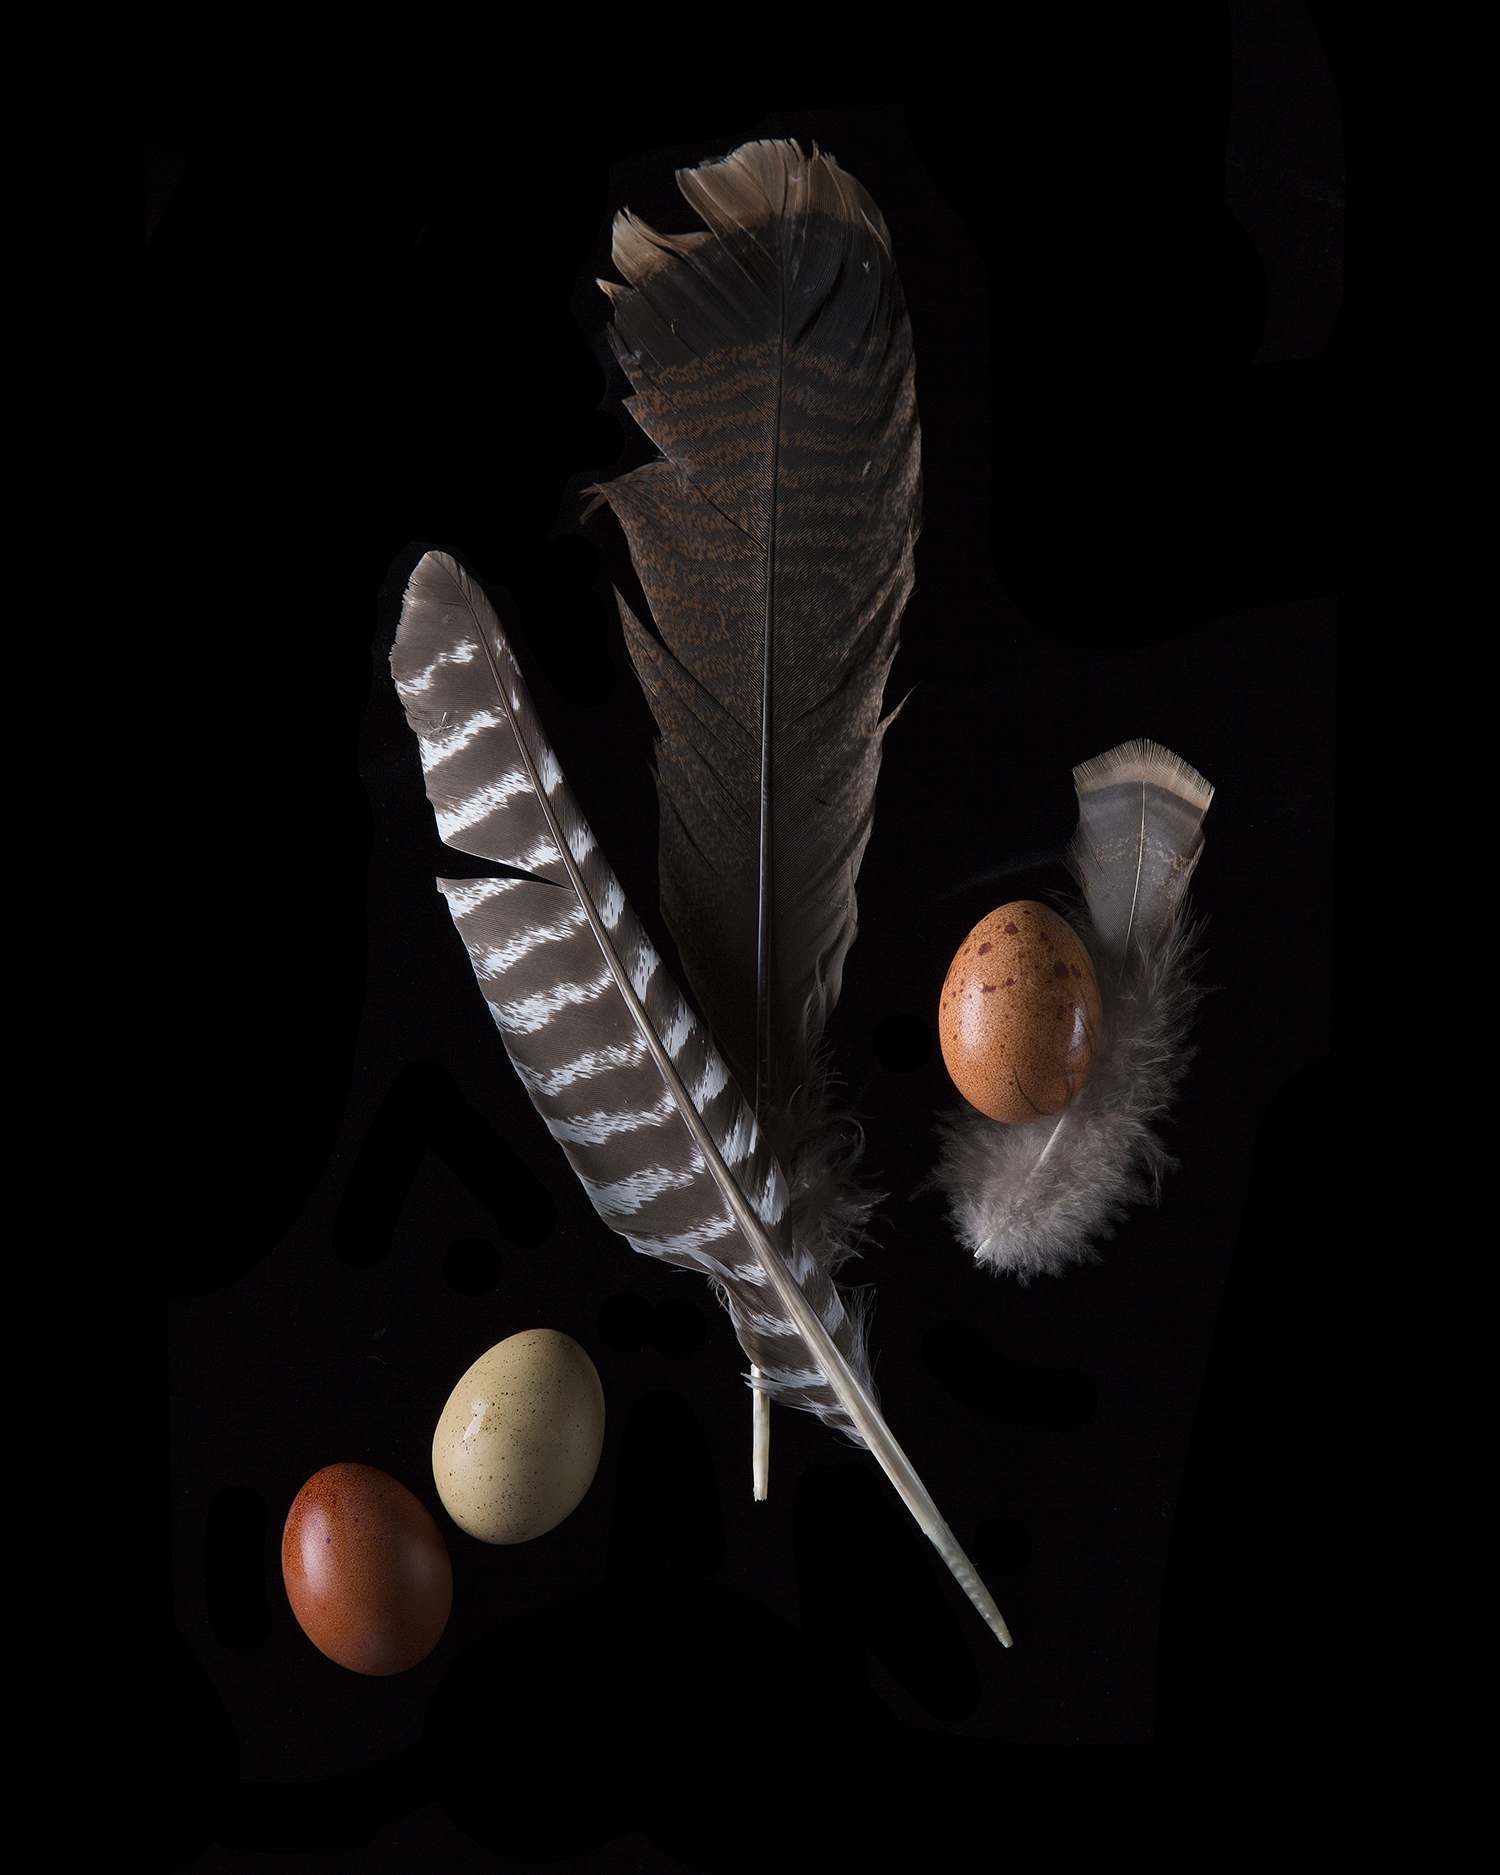 3egg w turkey feathers.jpg